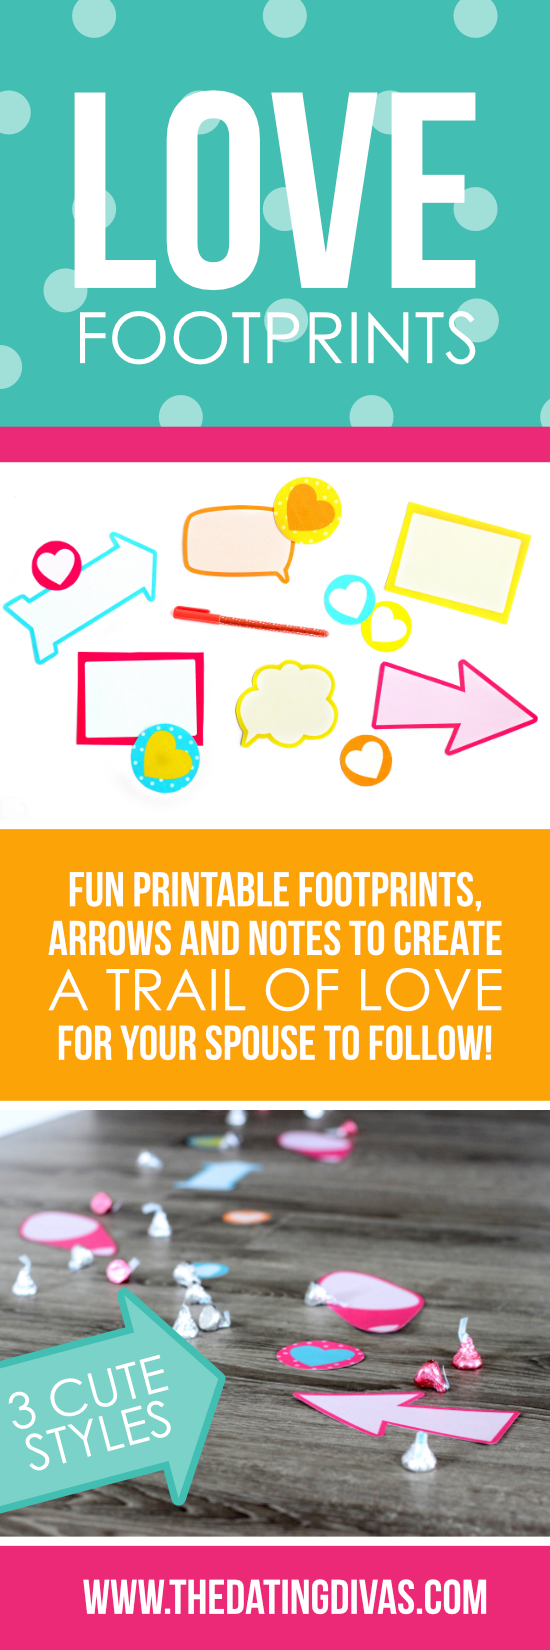 Love Footprints Trail Printables #TrailofLove #PrintableFootprints